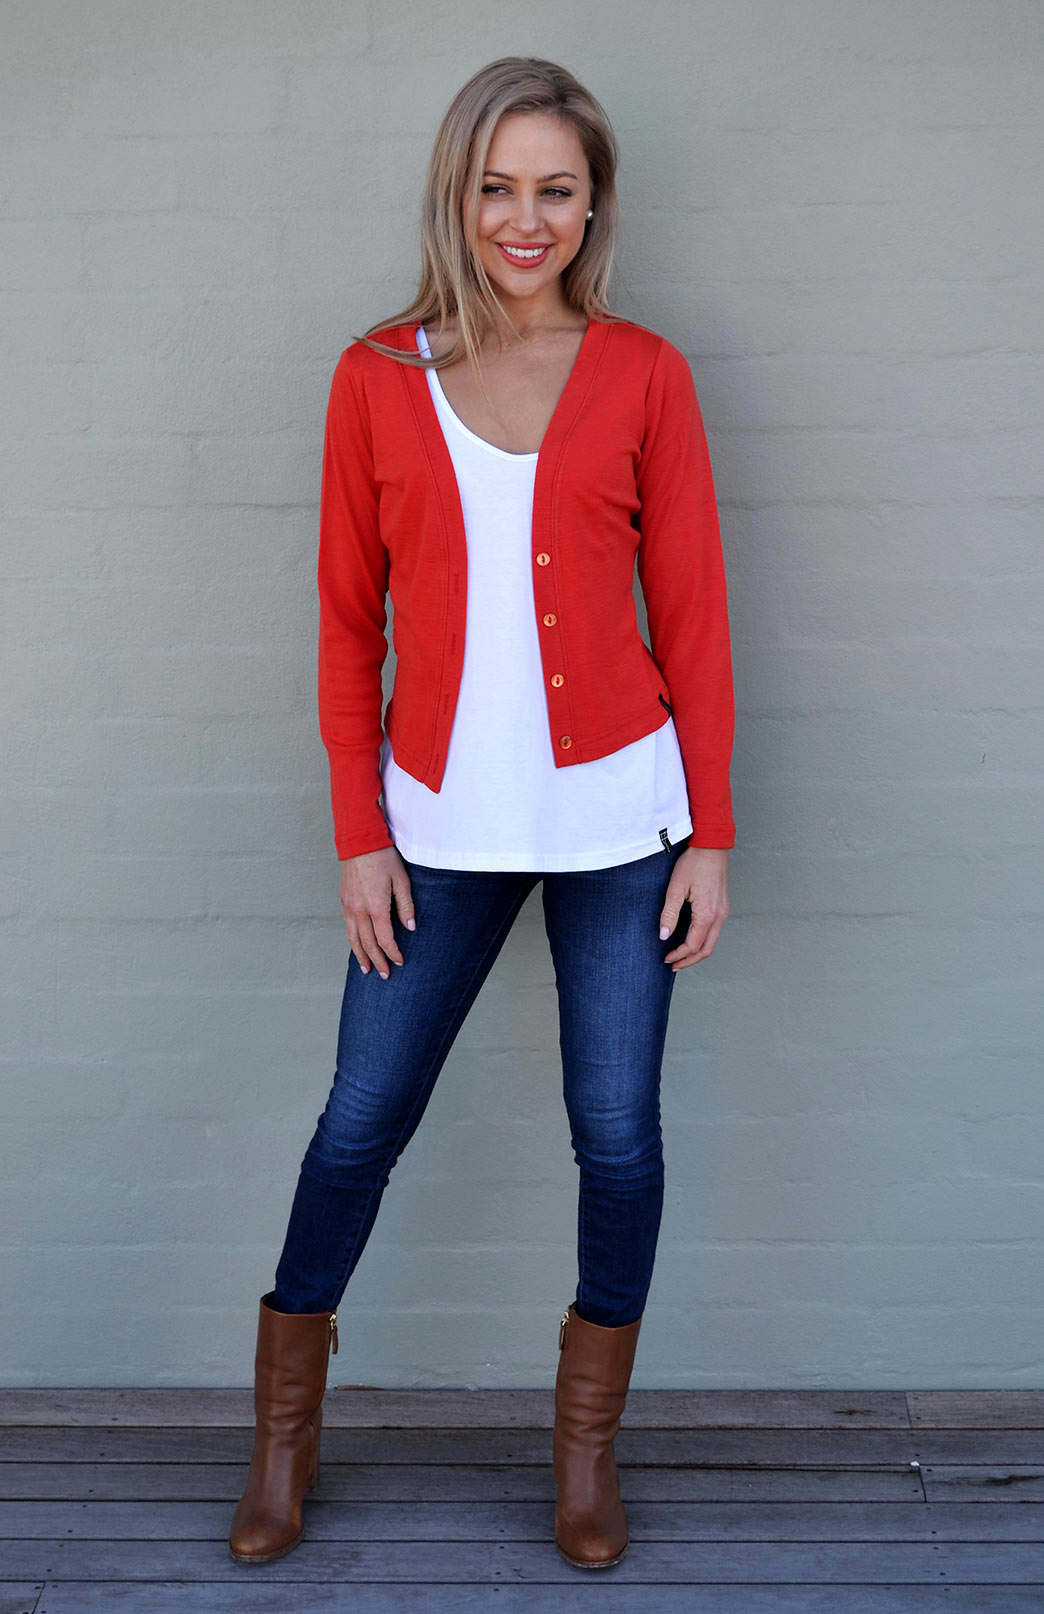 Crop Cardigan - Long Sleeved - Women's Paprika Orange Long Sleeve Merino Wool Cropped Cardigan with Buttons - Smitten Merino Tasmania Australia